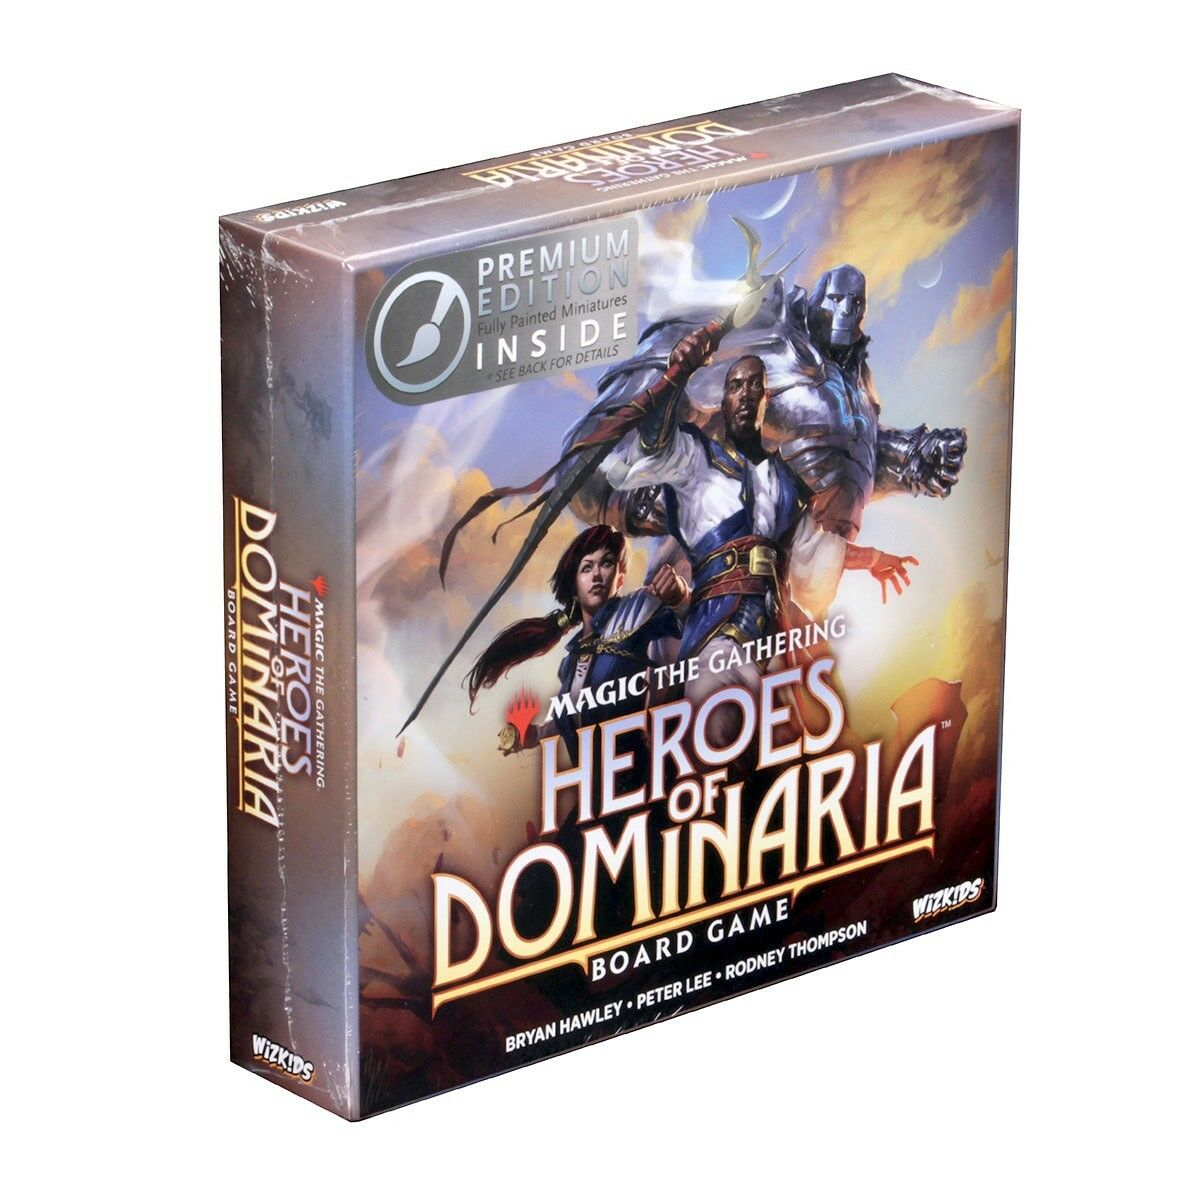 Magic the gathering  helden der llanowar - brettspiel premium edition wzk 73468